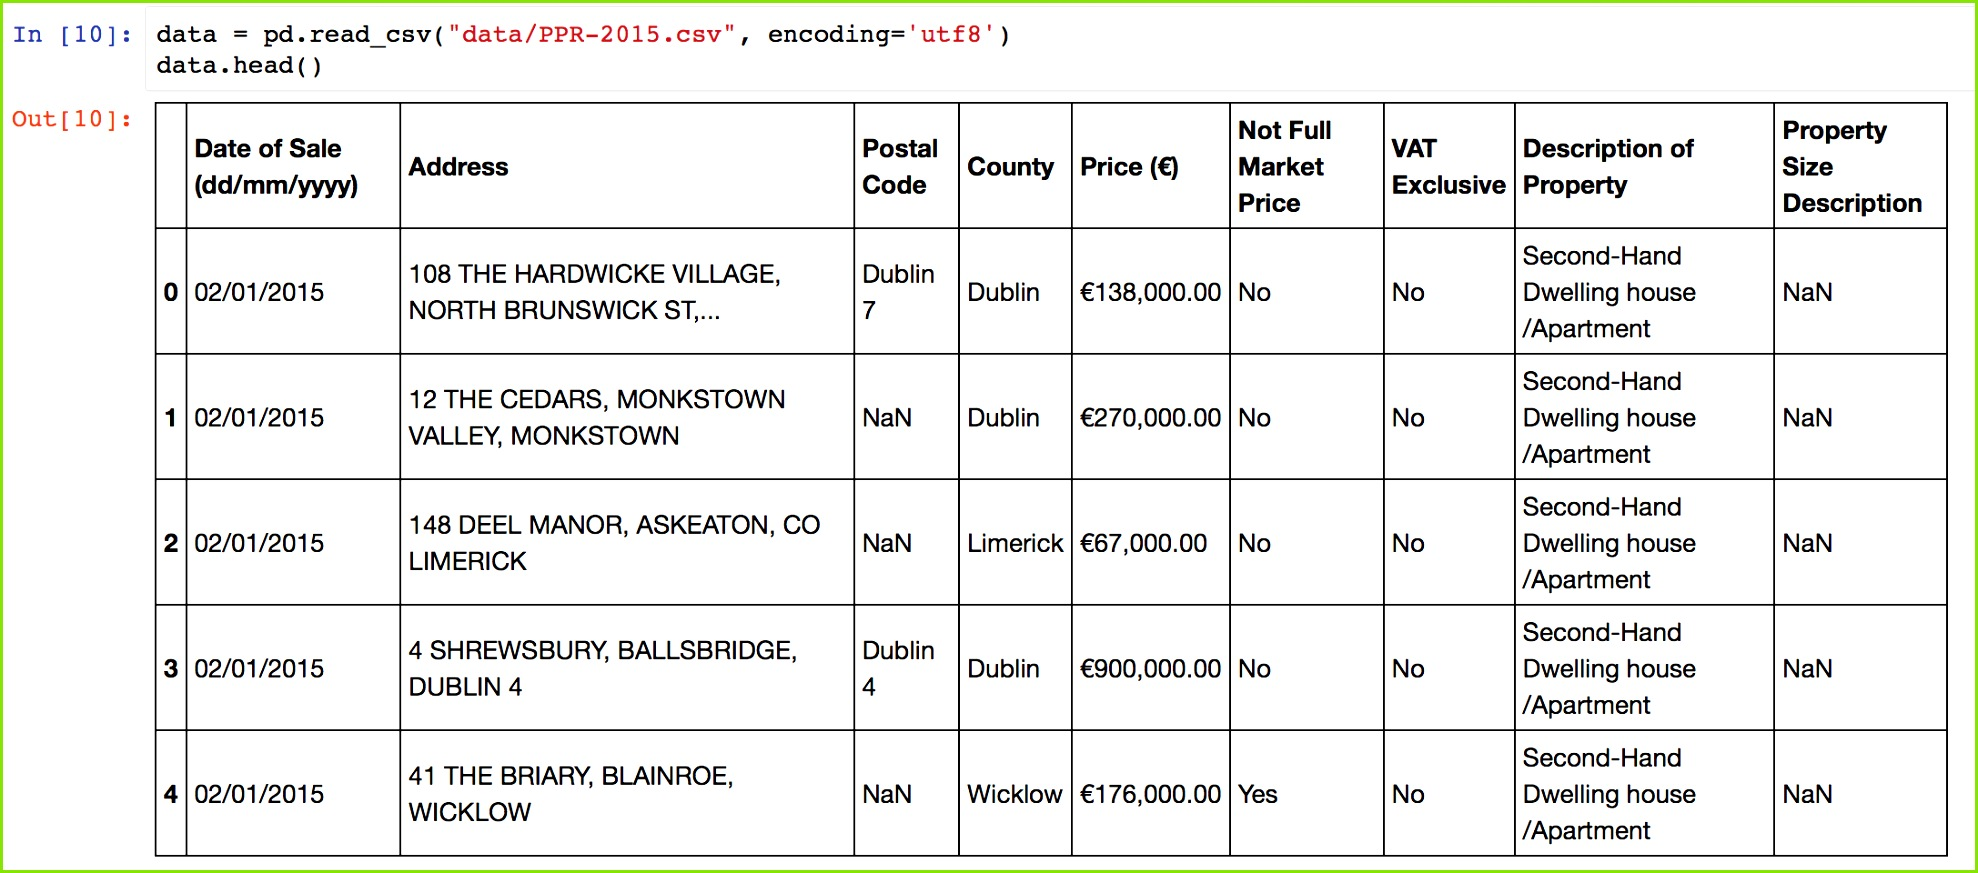 Sample geocoding data ed from the Irish property price register Note the column